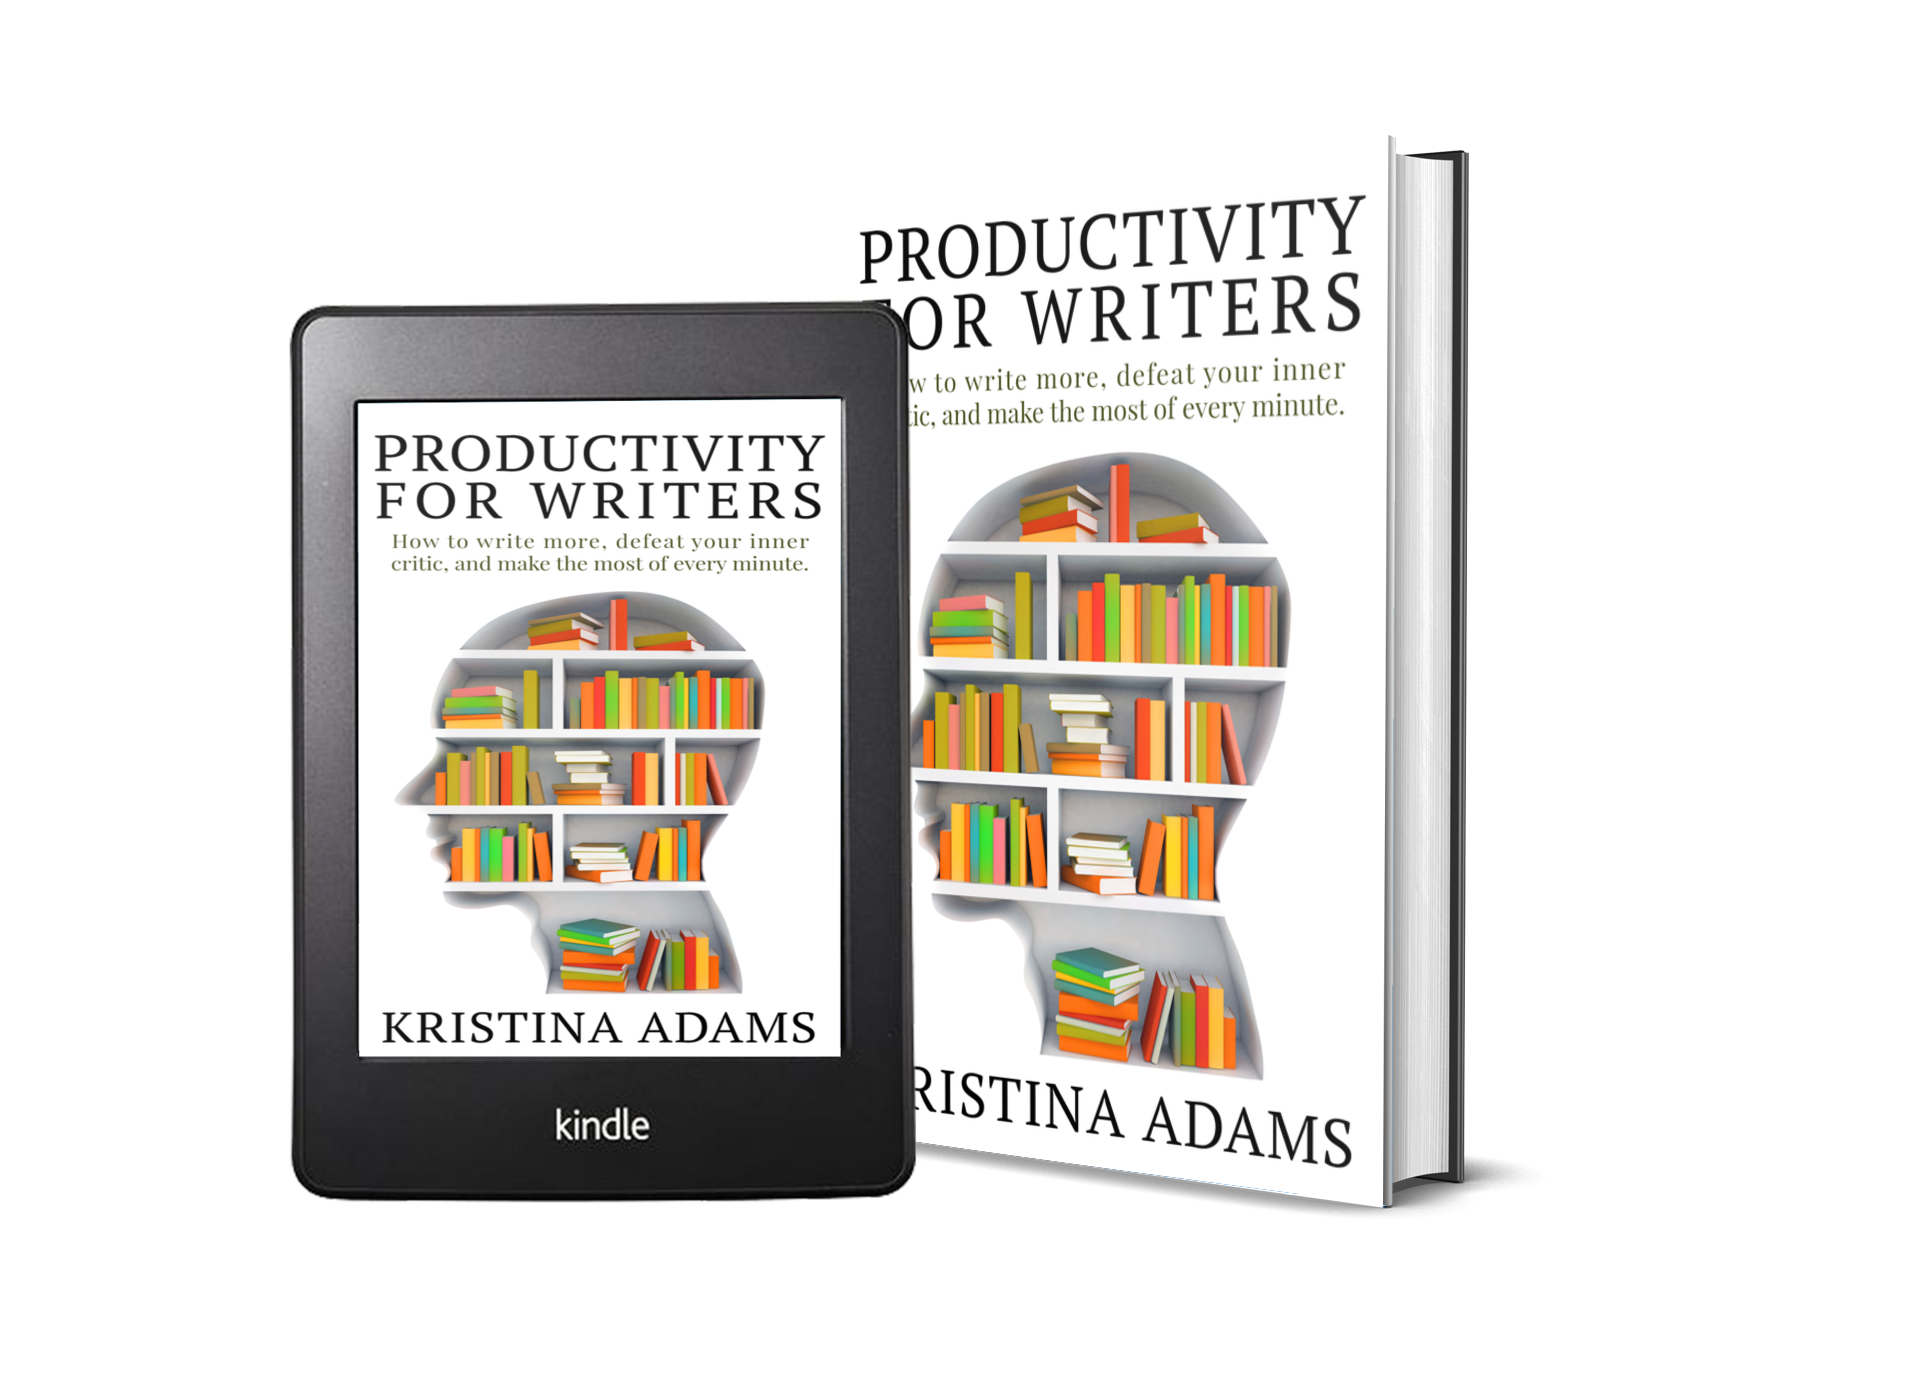 Productivity for Writers ebook and print cover mockup